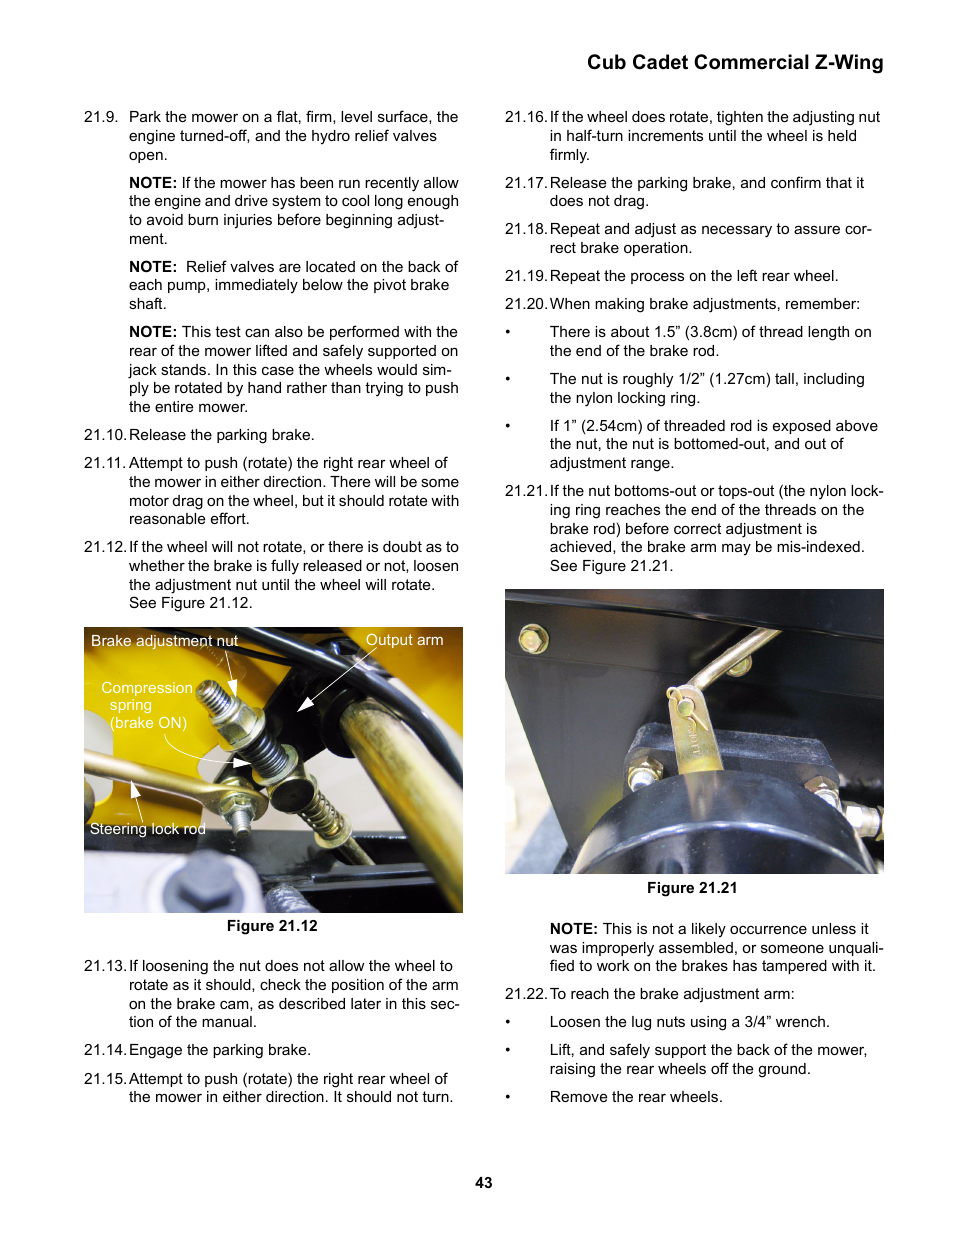 Cub cadet commercial z-wing | Cub Cadet Z-Wing User Manual | Page 47